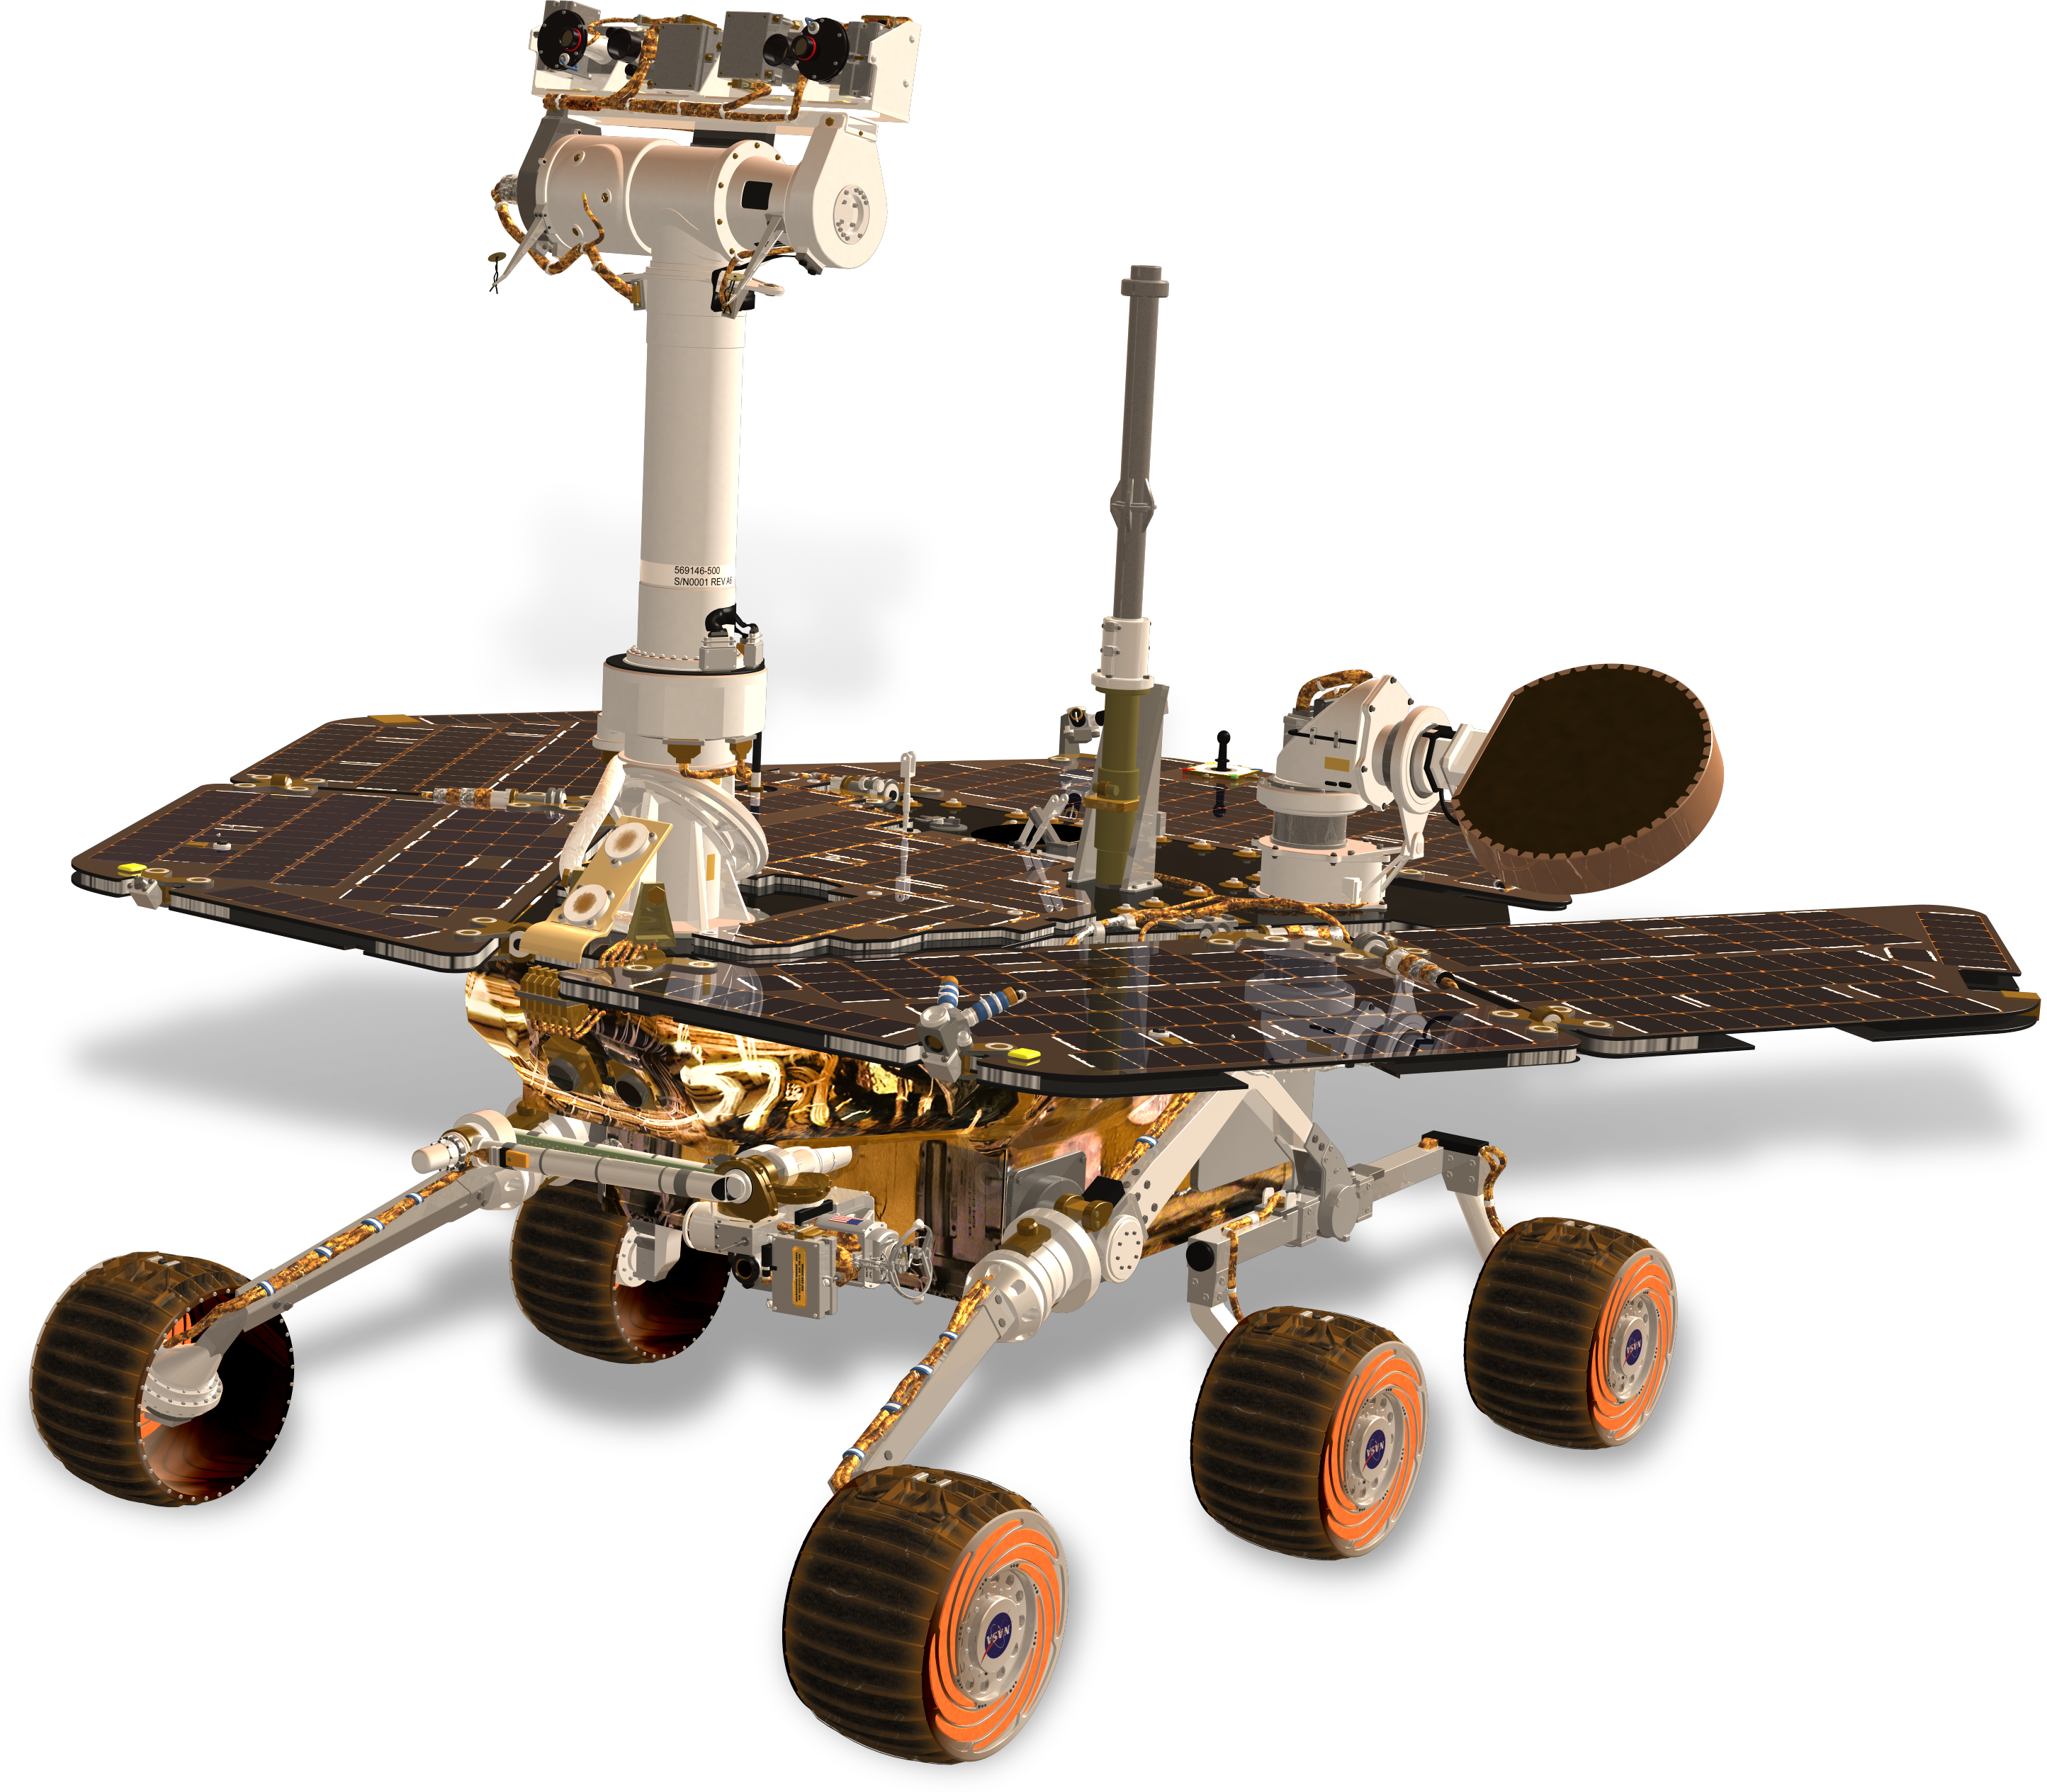 the game mars rover - photo #22